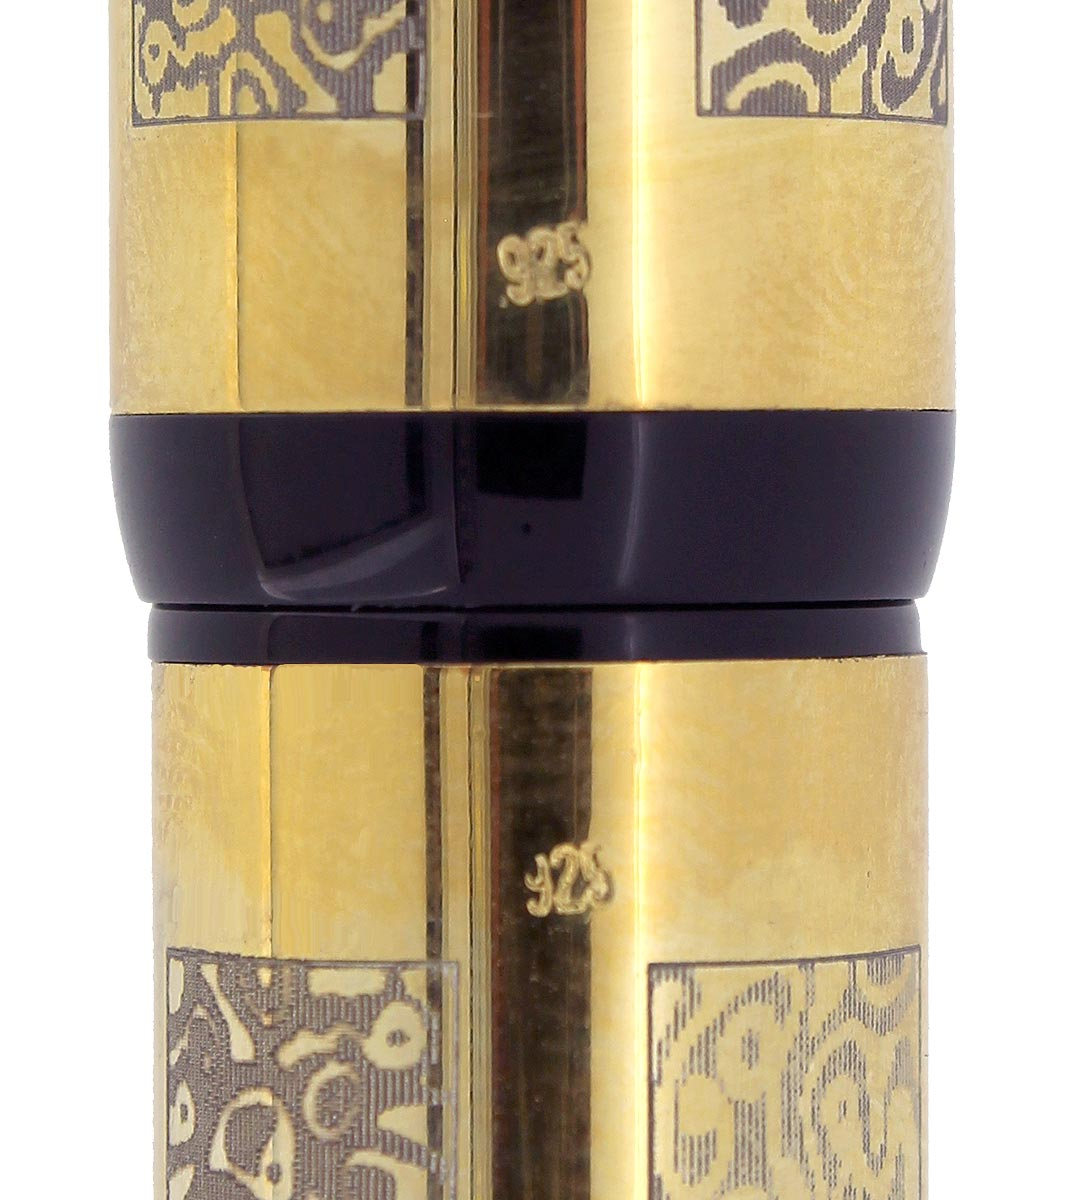 2008 BEXLEY OWNERS CLUB LIMITED EDITION 29/150 VERMEIL OVER STERLING FOUNTAIN PEN NOS NEVER INKED OFFERED BY ANTIQUE DIGGER